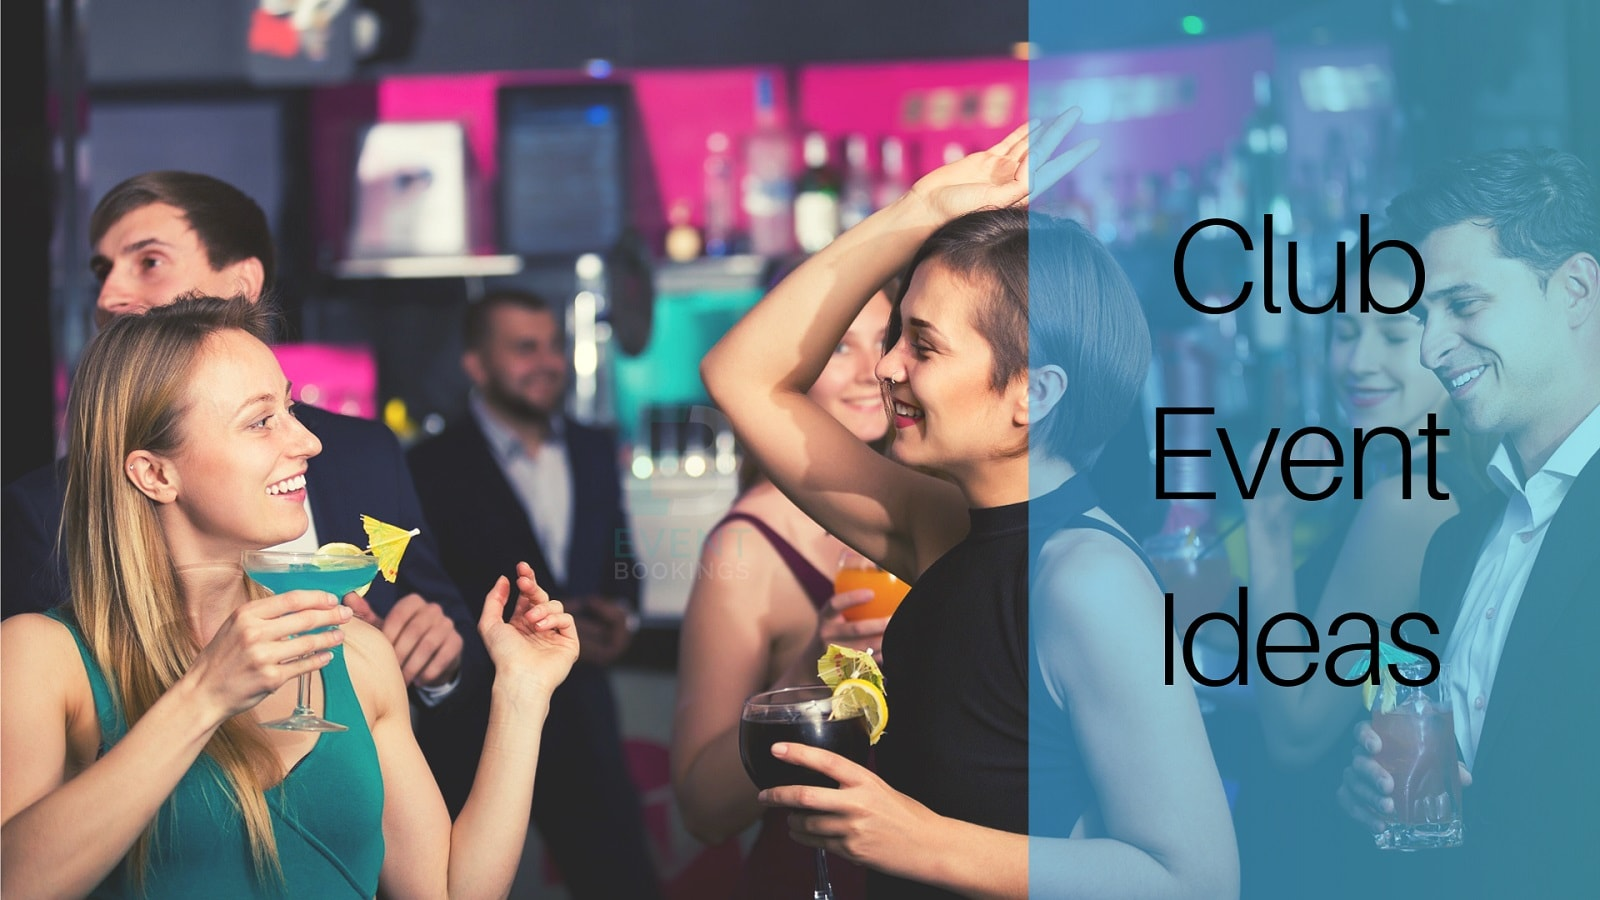 10 Exciting Club Event Ideas to Engage Your Members